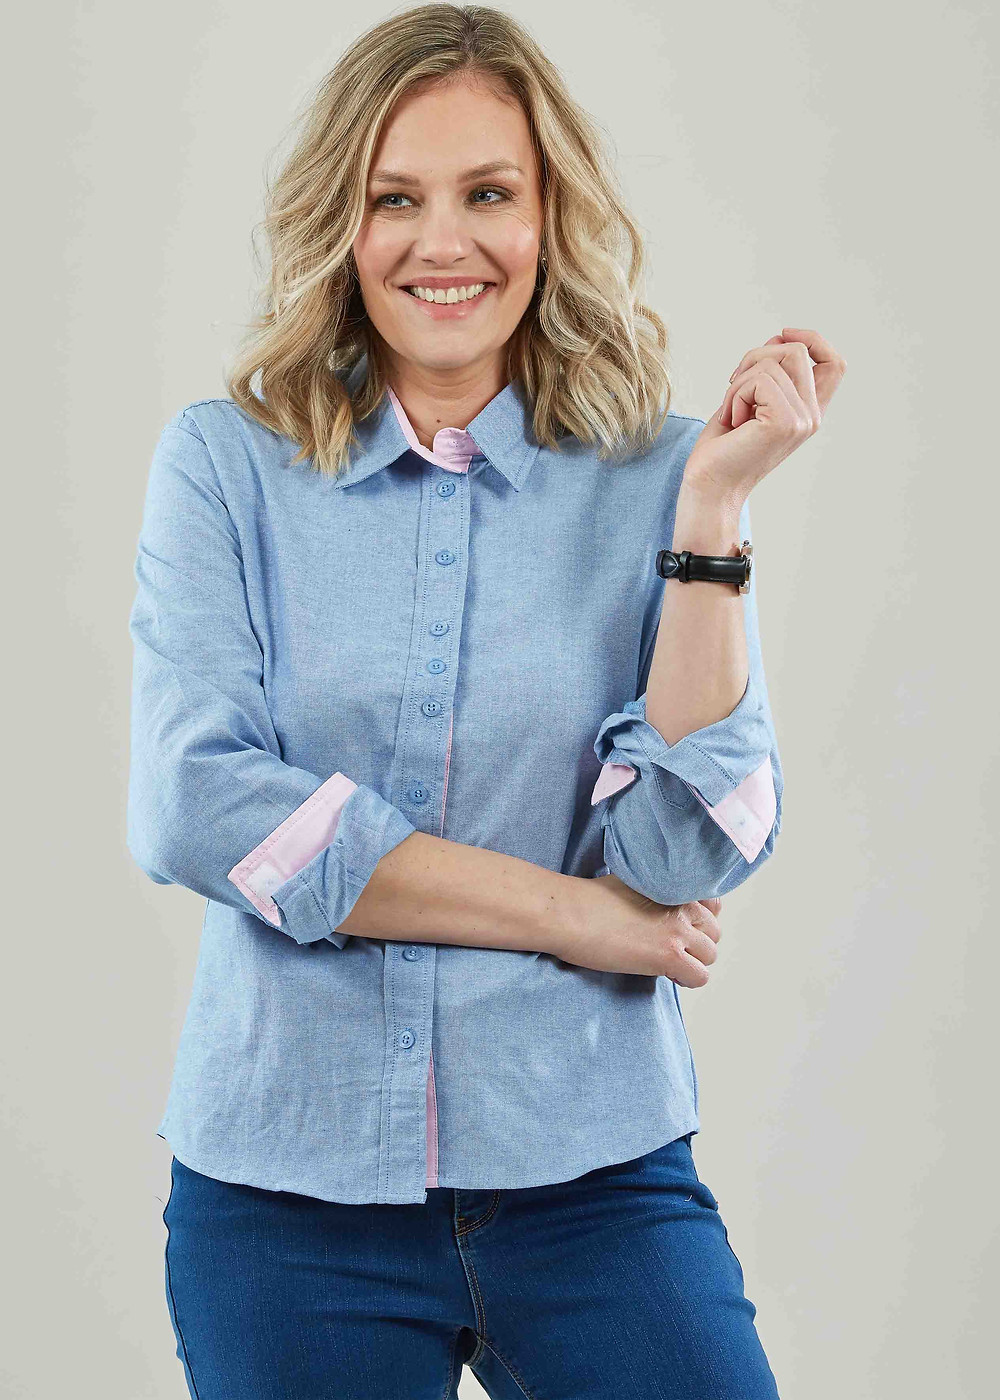 A blonde woman wears a blue long sleeved s with pink cuffs and collar trim. It has fake button detail on the centre front and cuffs and closes using velcro. She wears dark blue jeans.